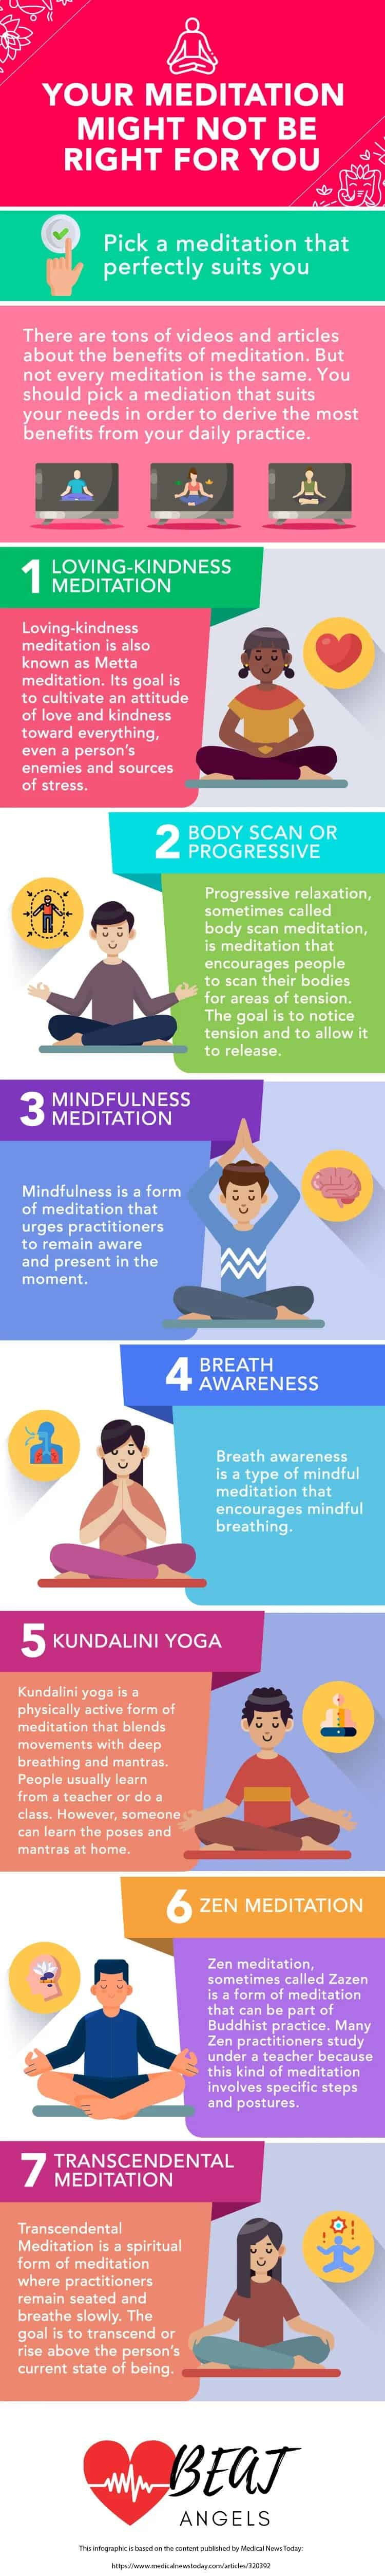 Your meditation might not be right for you